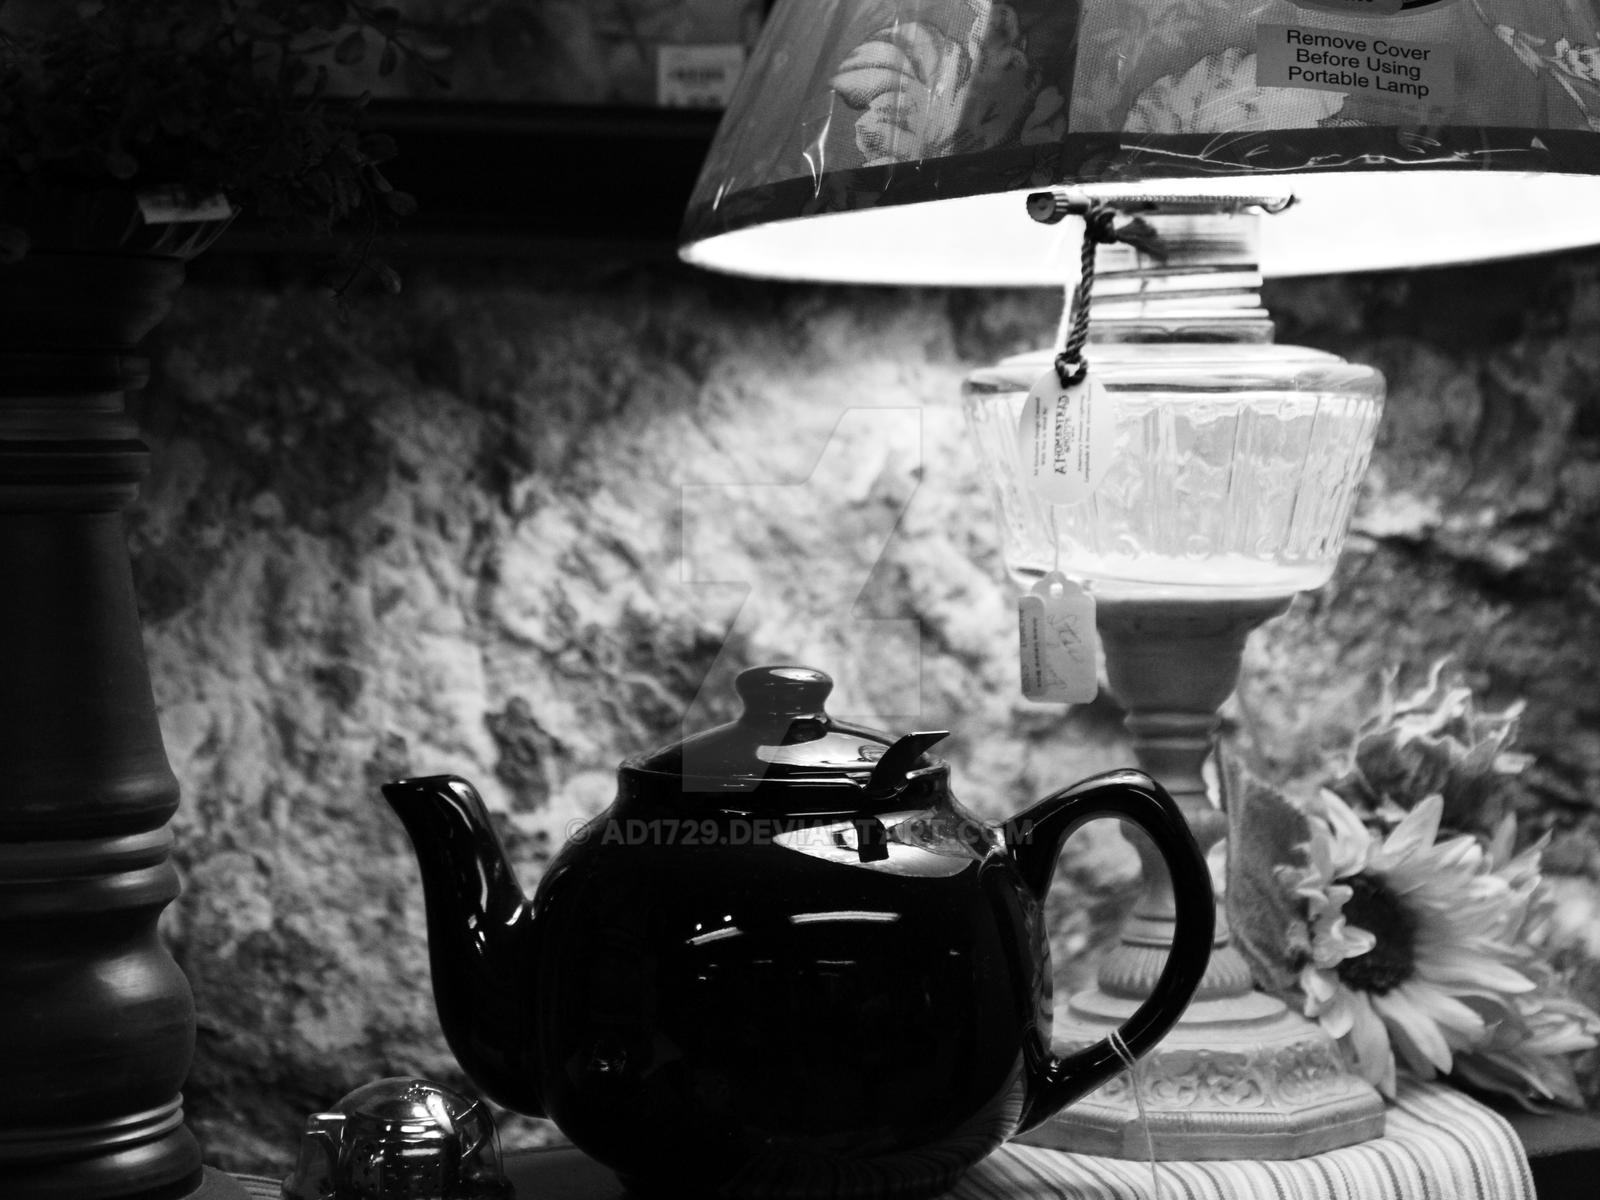 Teapot In Black And White By Ad1729 On Deviantart